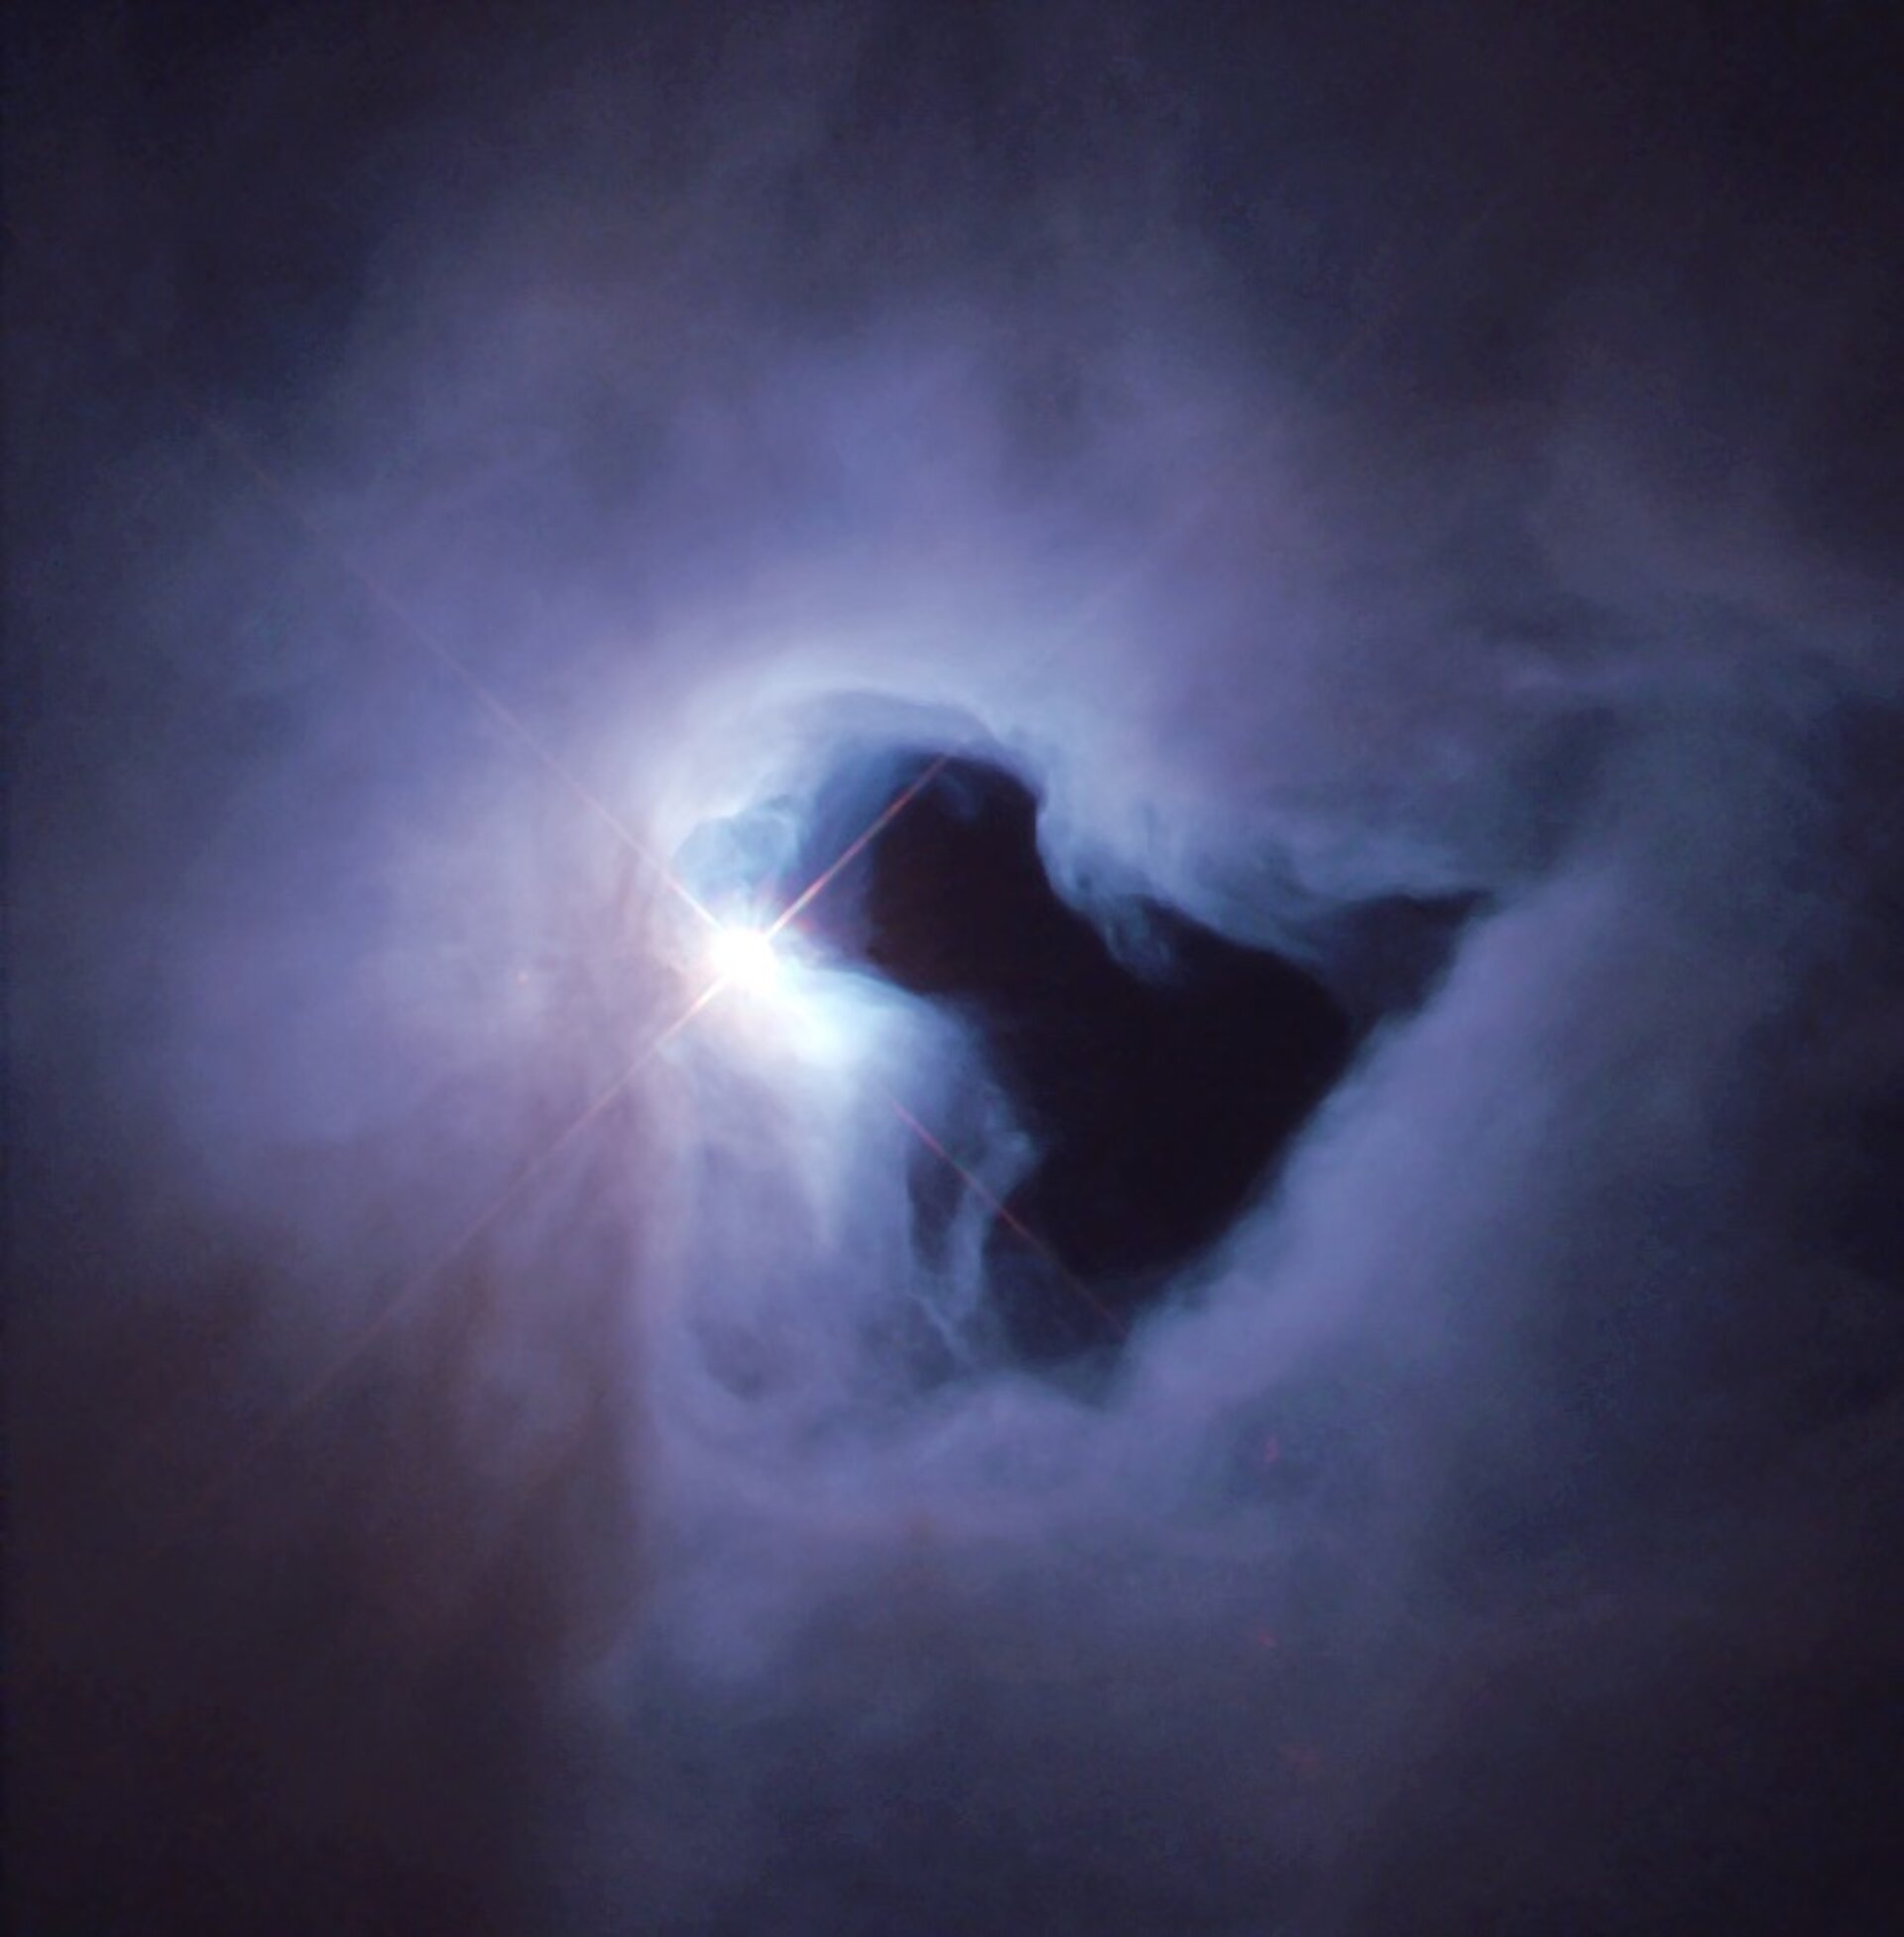 Reflection nebula NGC 1999